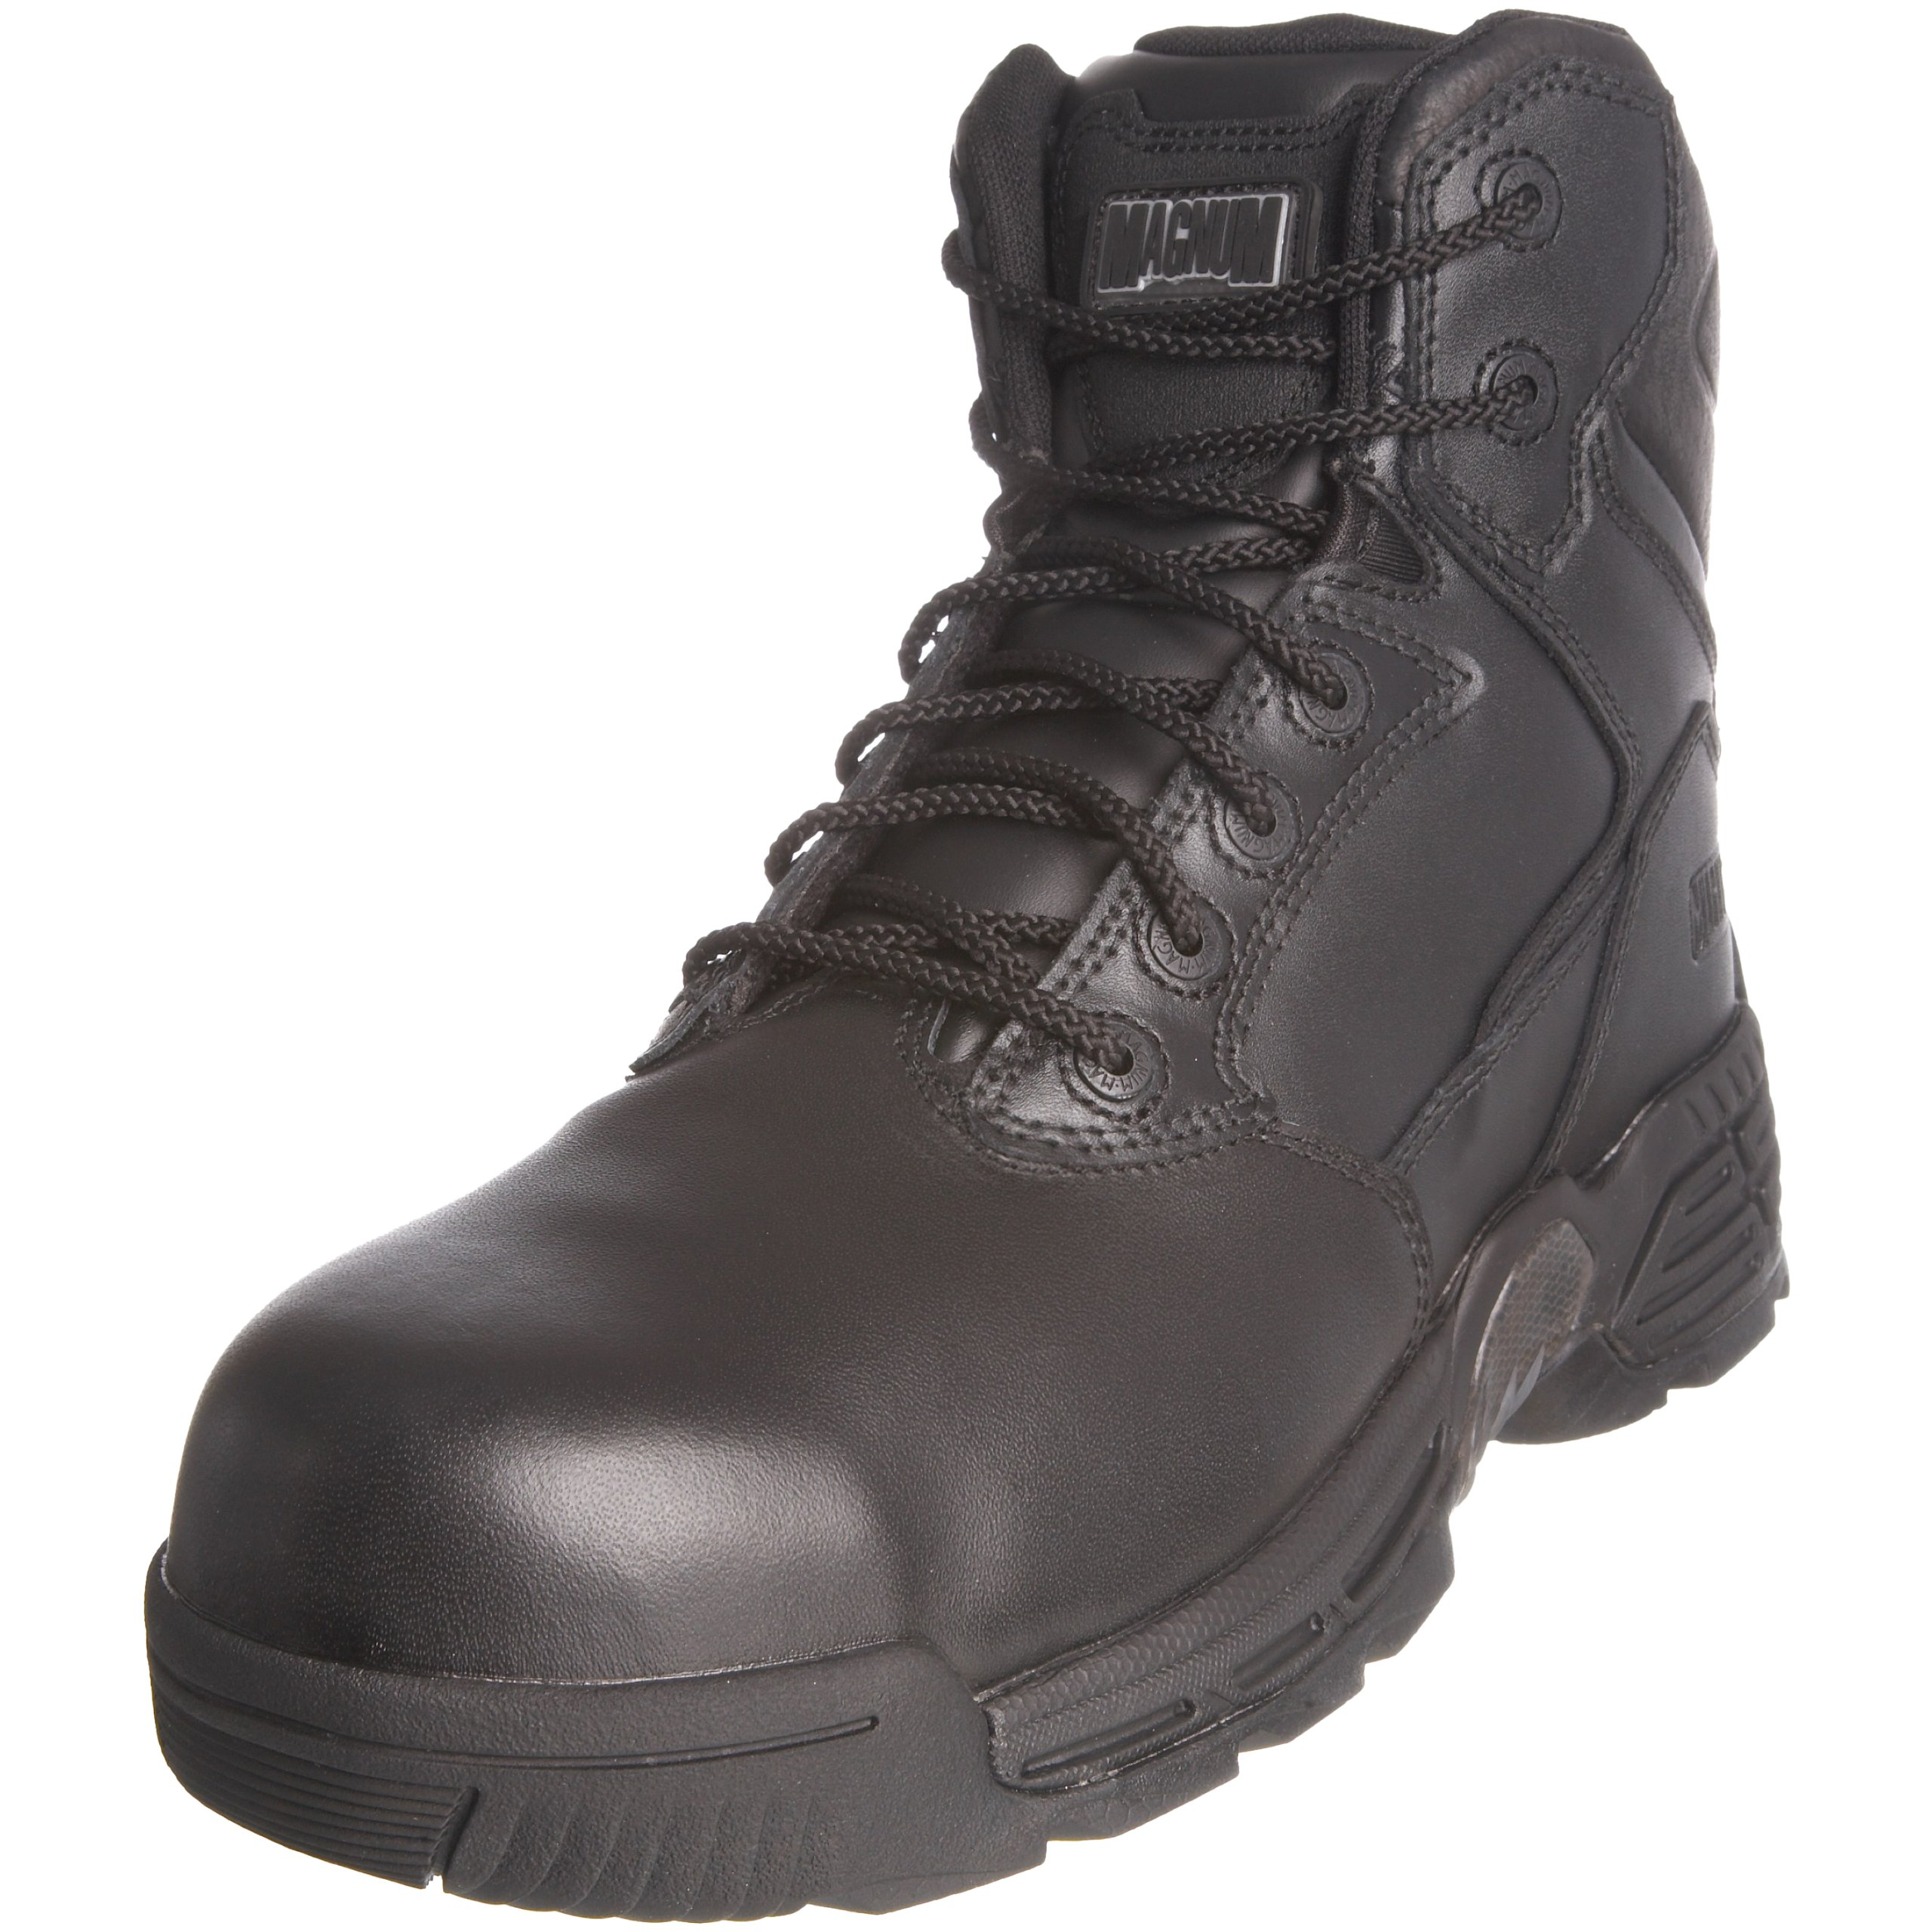 Magnum Stealth Force 6.0 CT CP Leather Boots - 10 - Black